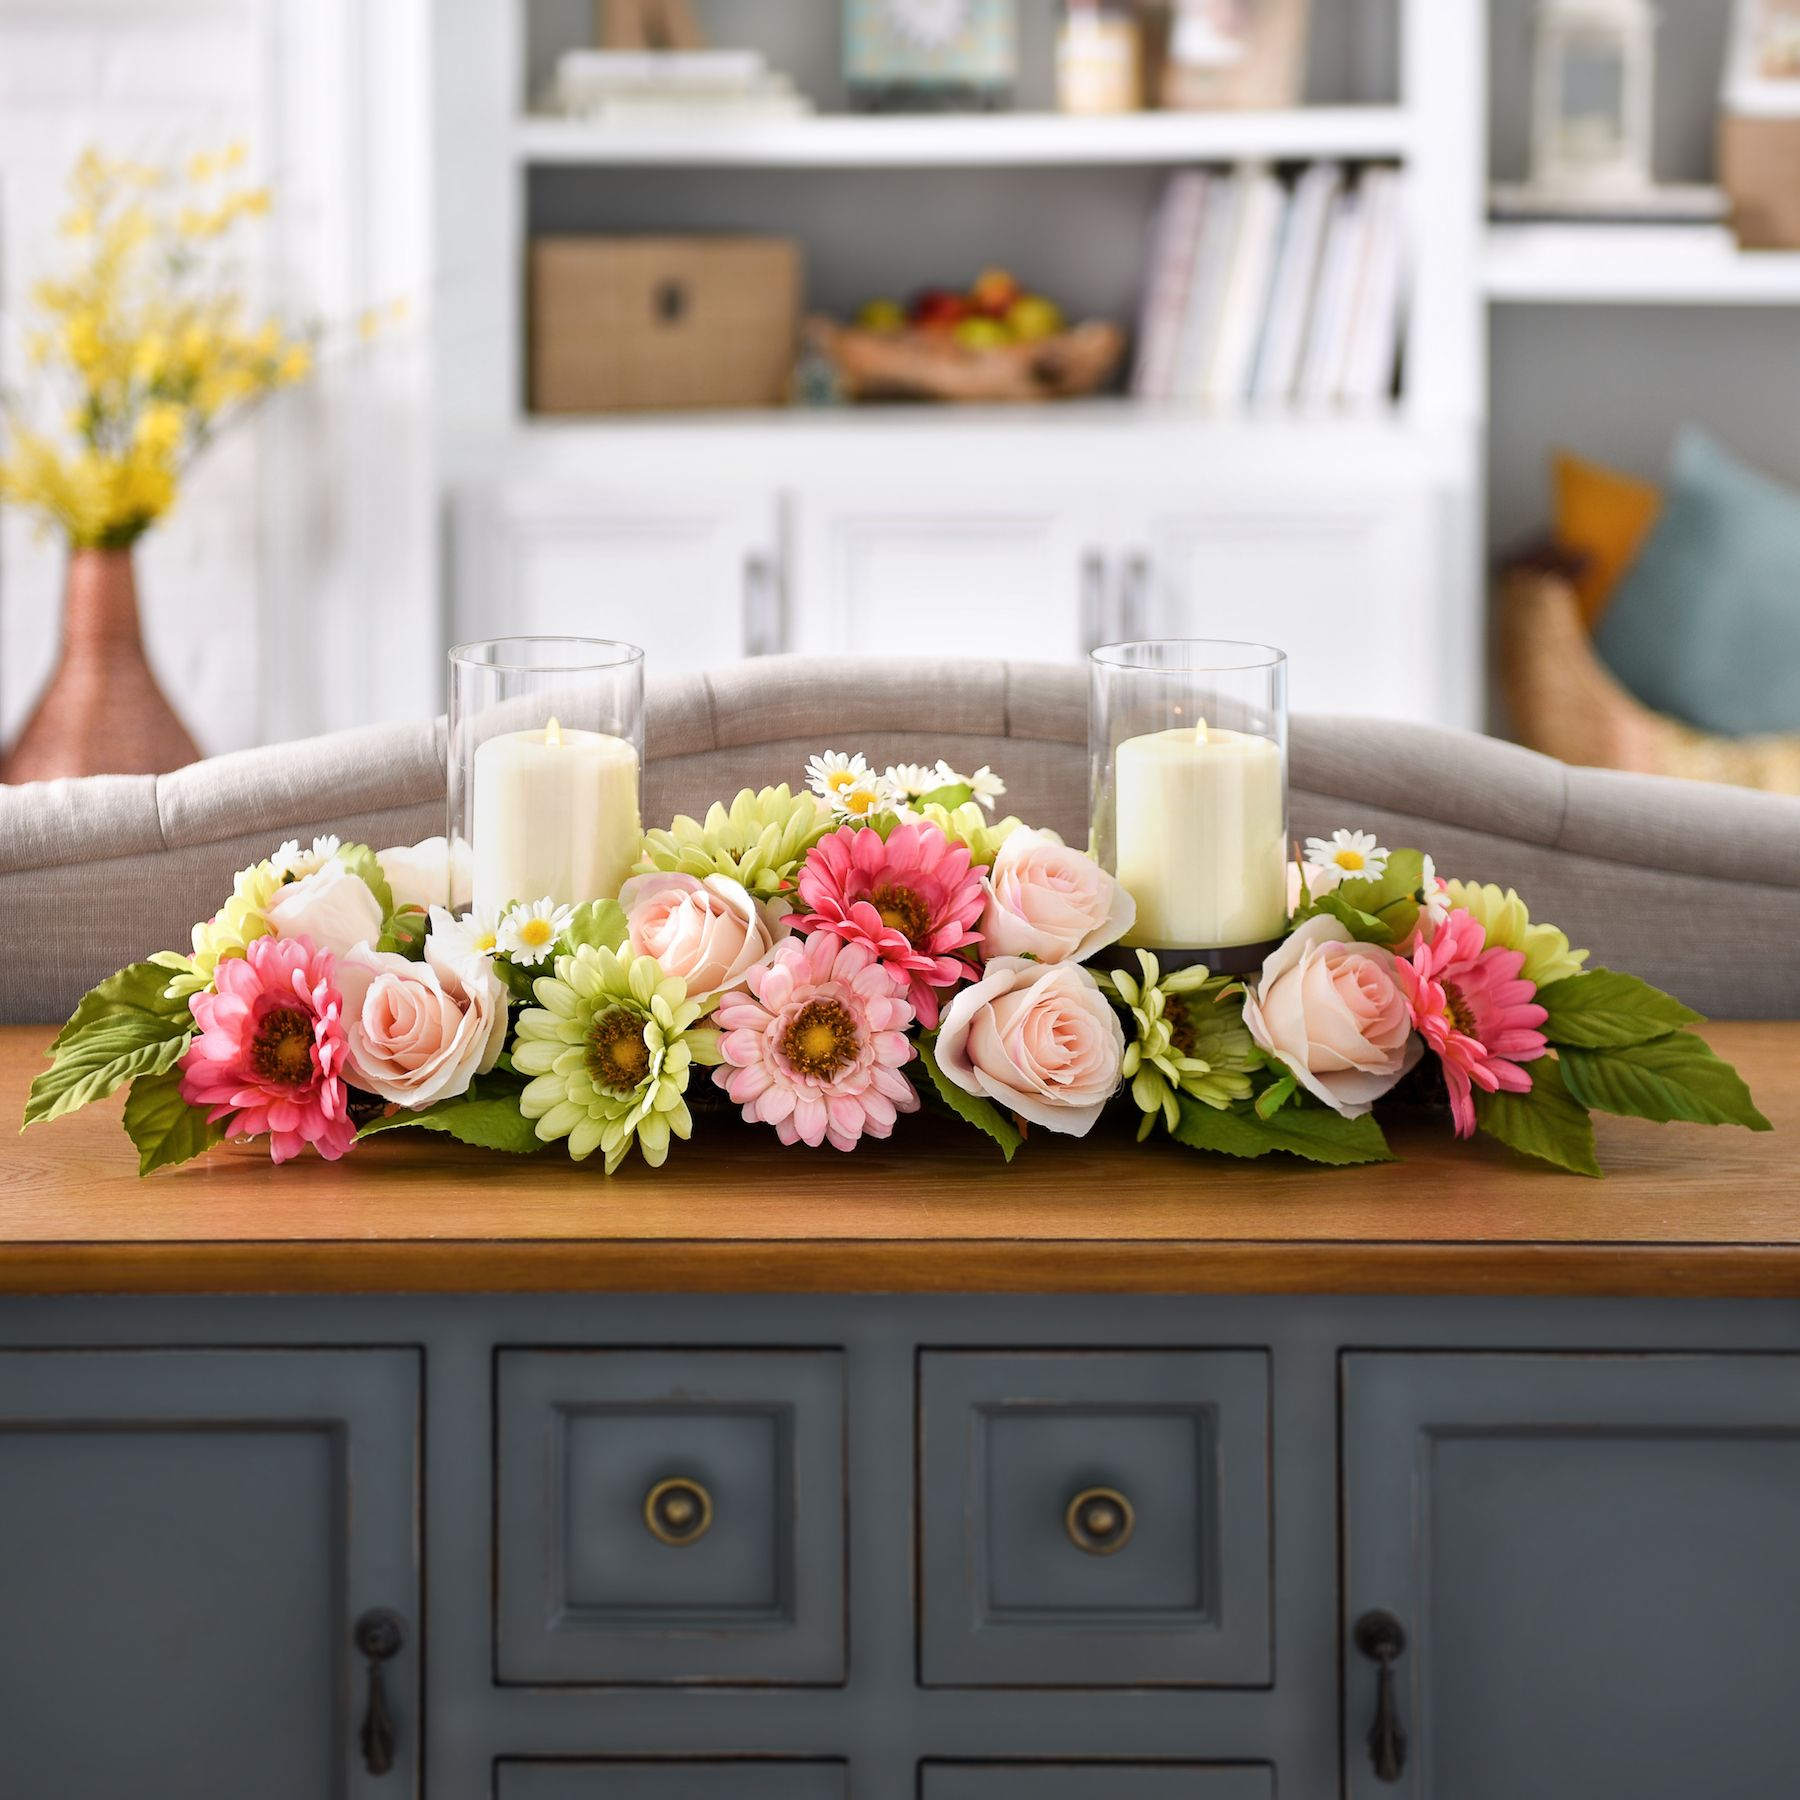 Bring the beauty of flowers to your kitchen table for